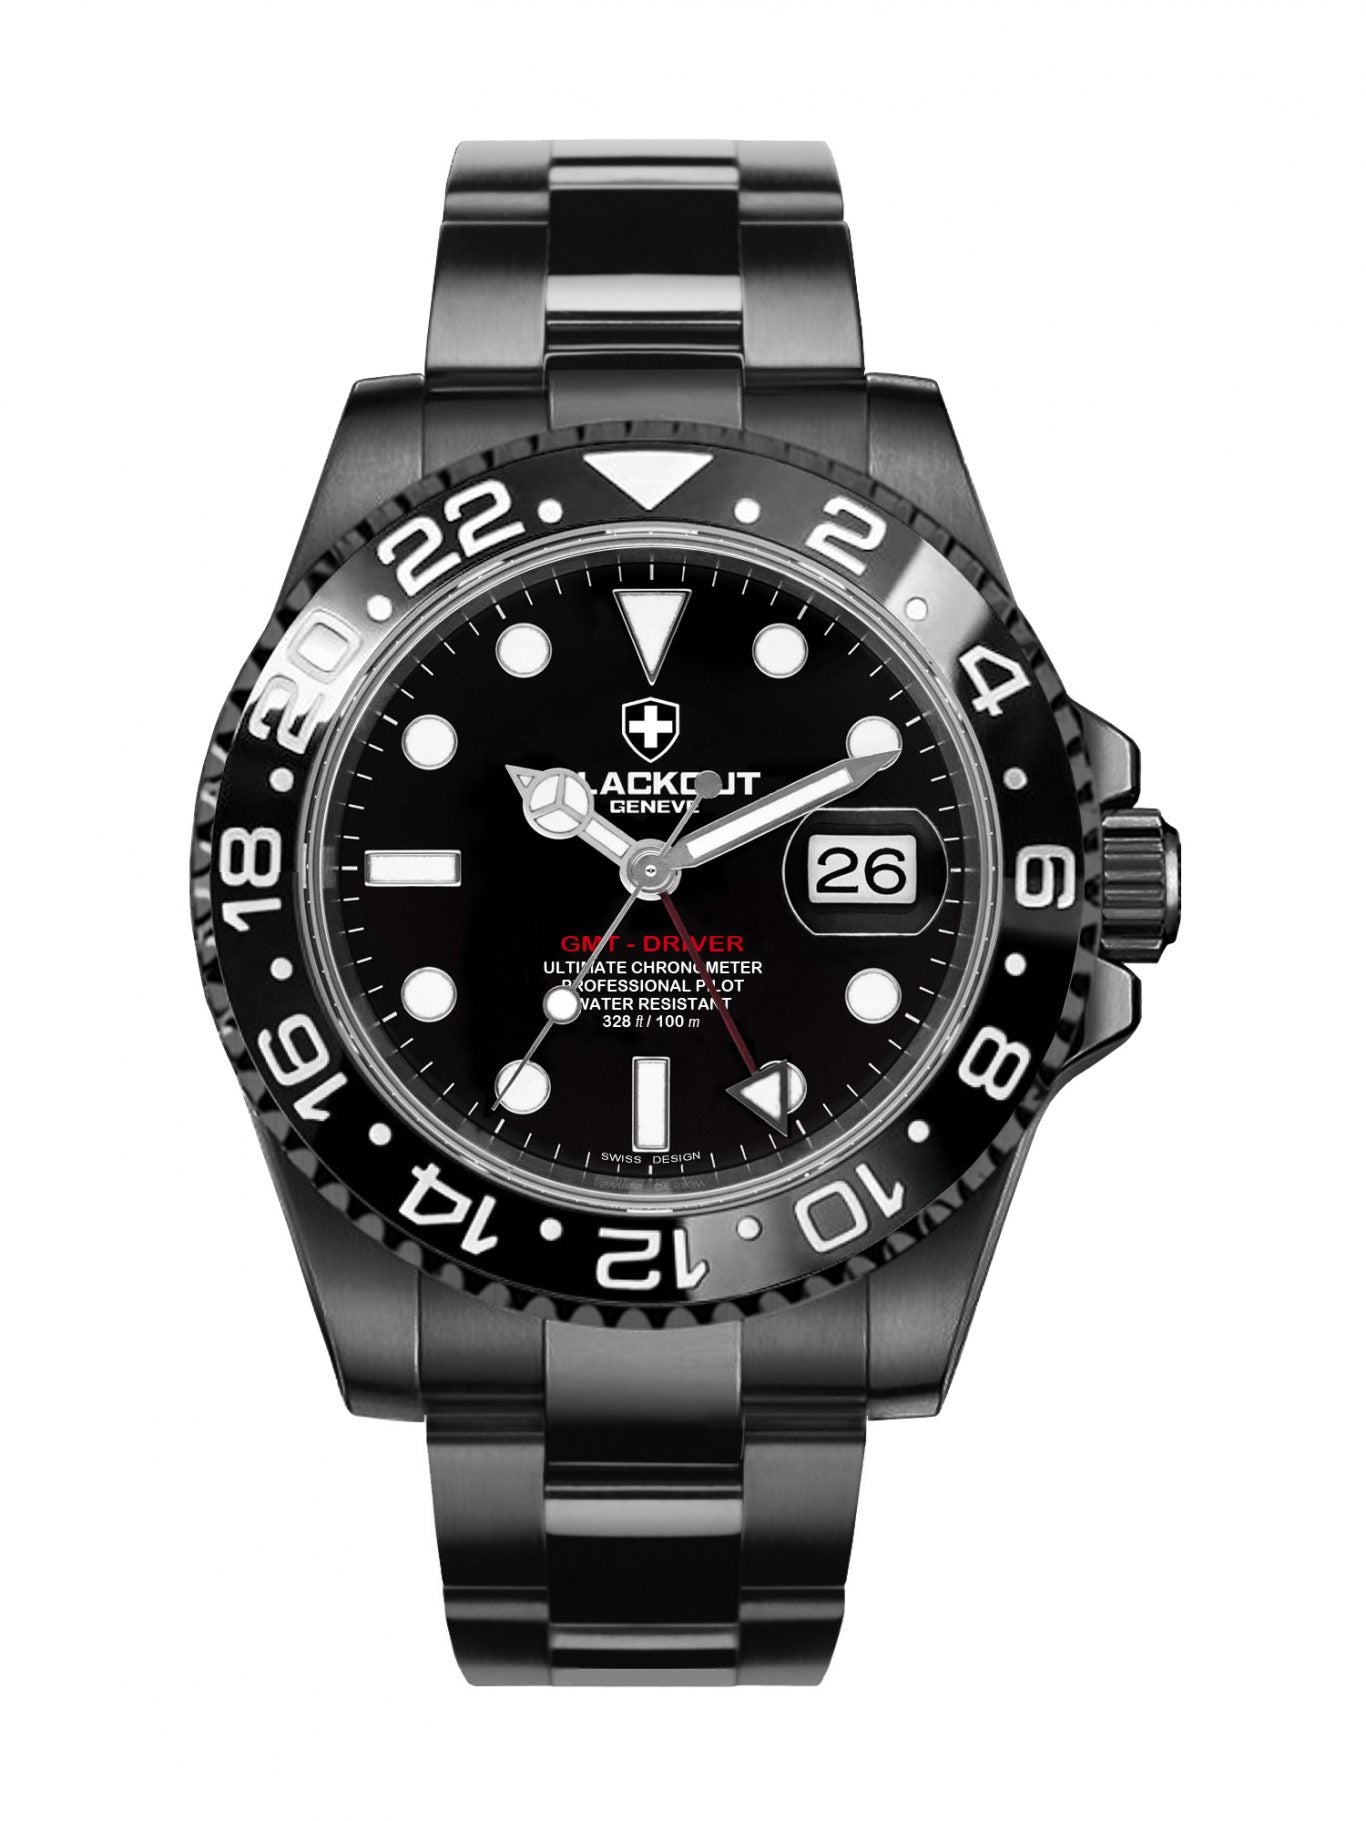 GMT DRIVER H7-7 AUTOMATIC